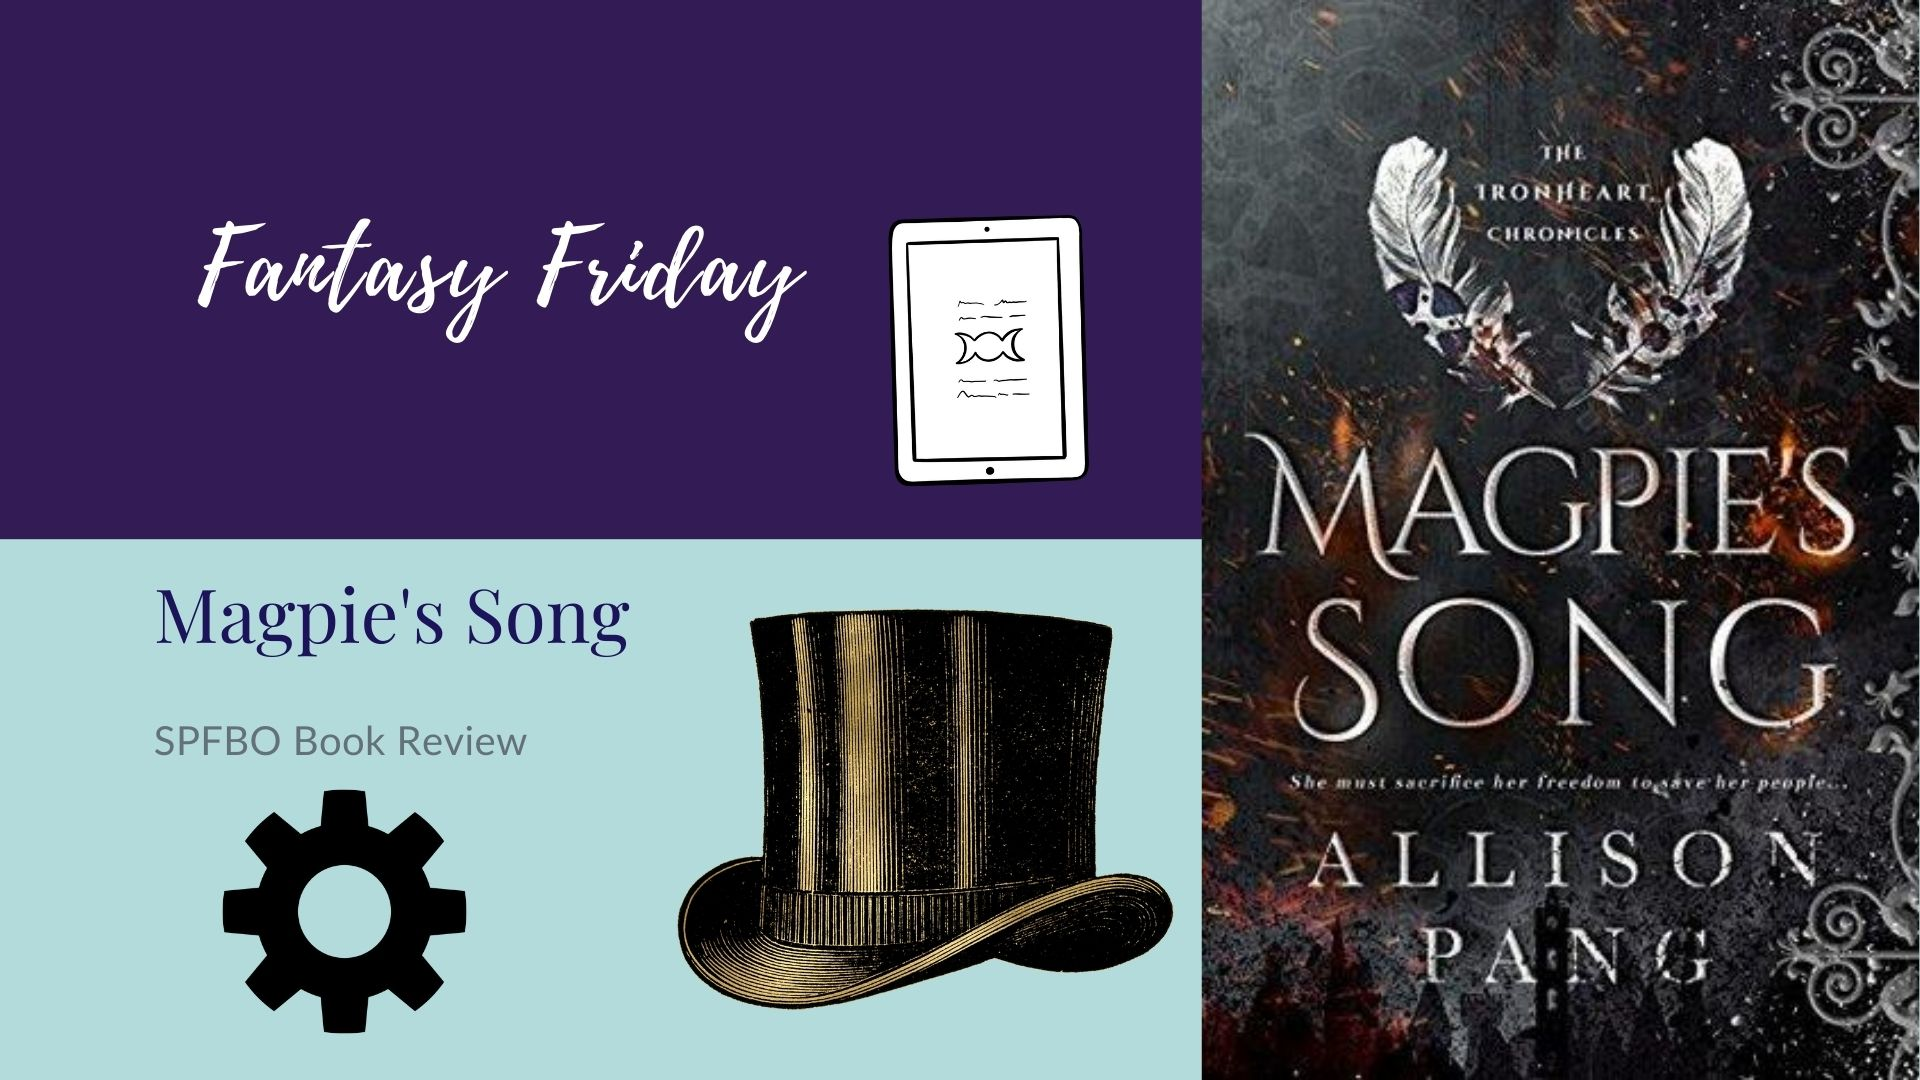 Fantasy Friday: Magpie's Song by Allison Pang